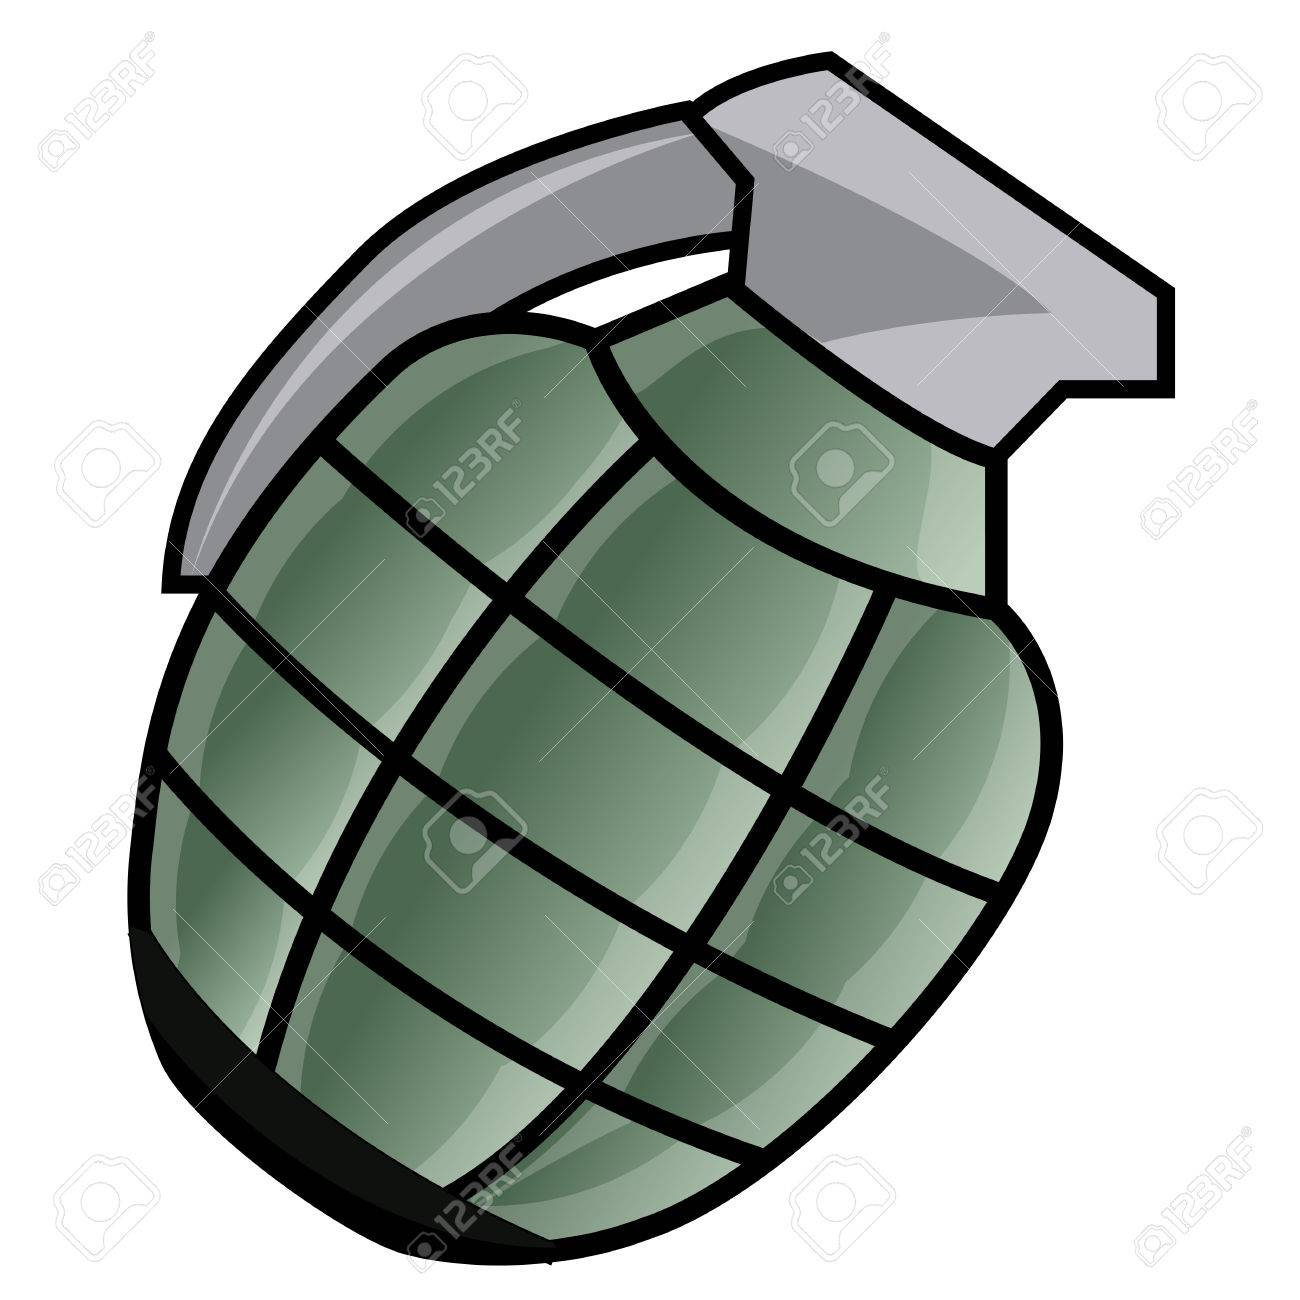 hand grenade isolated illustration on white background royalty free rh 123rf com Hand Grenade Fuse WW2 Hand Grenades